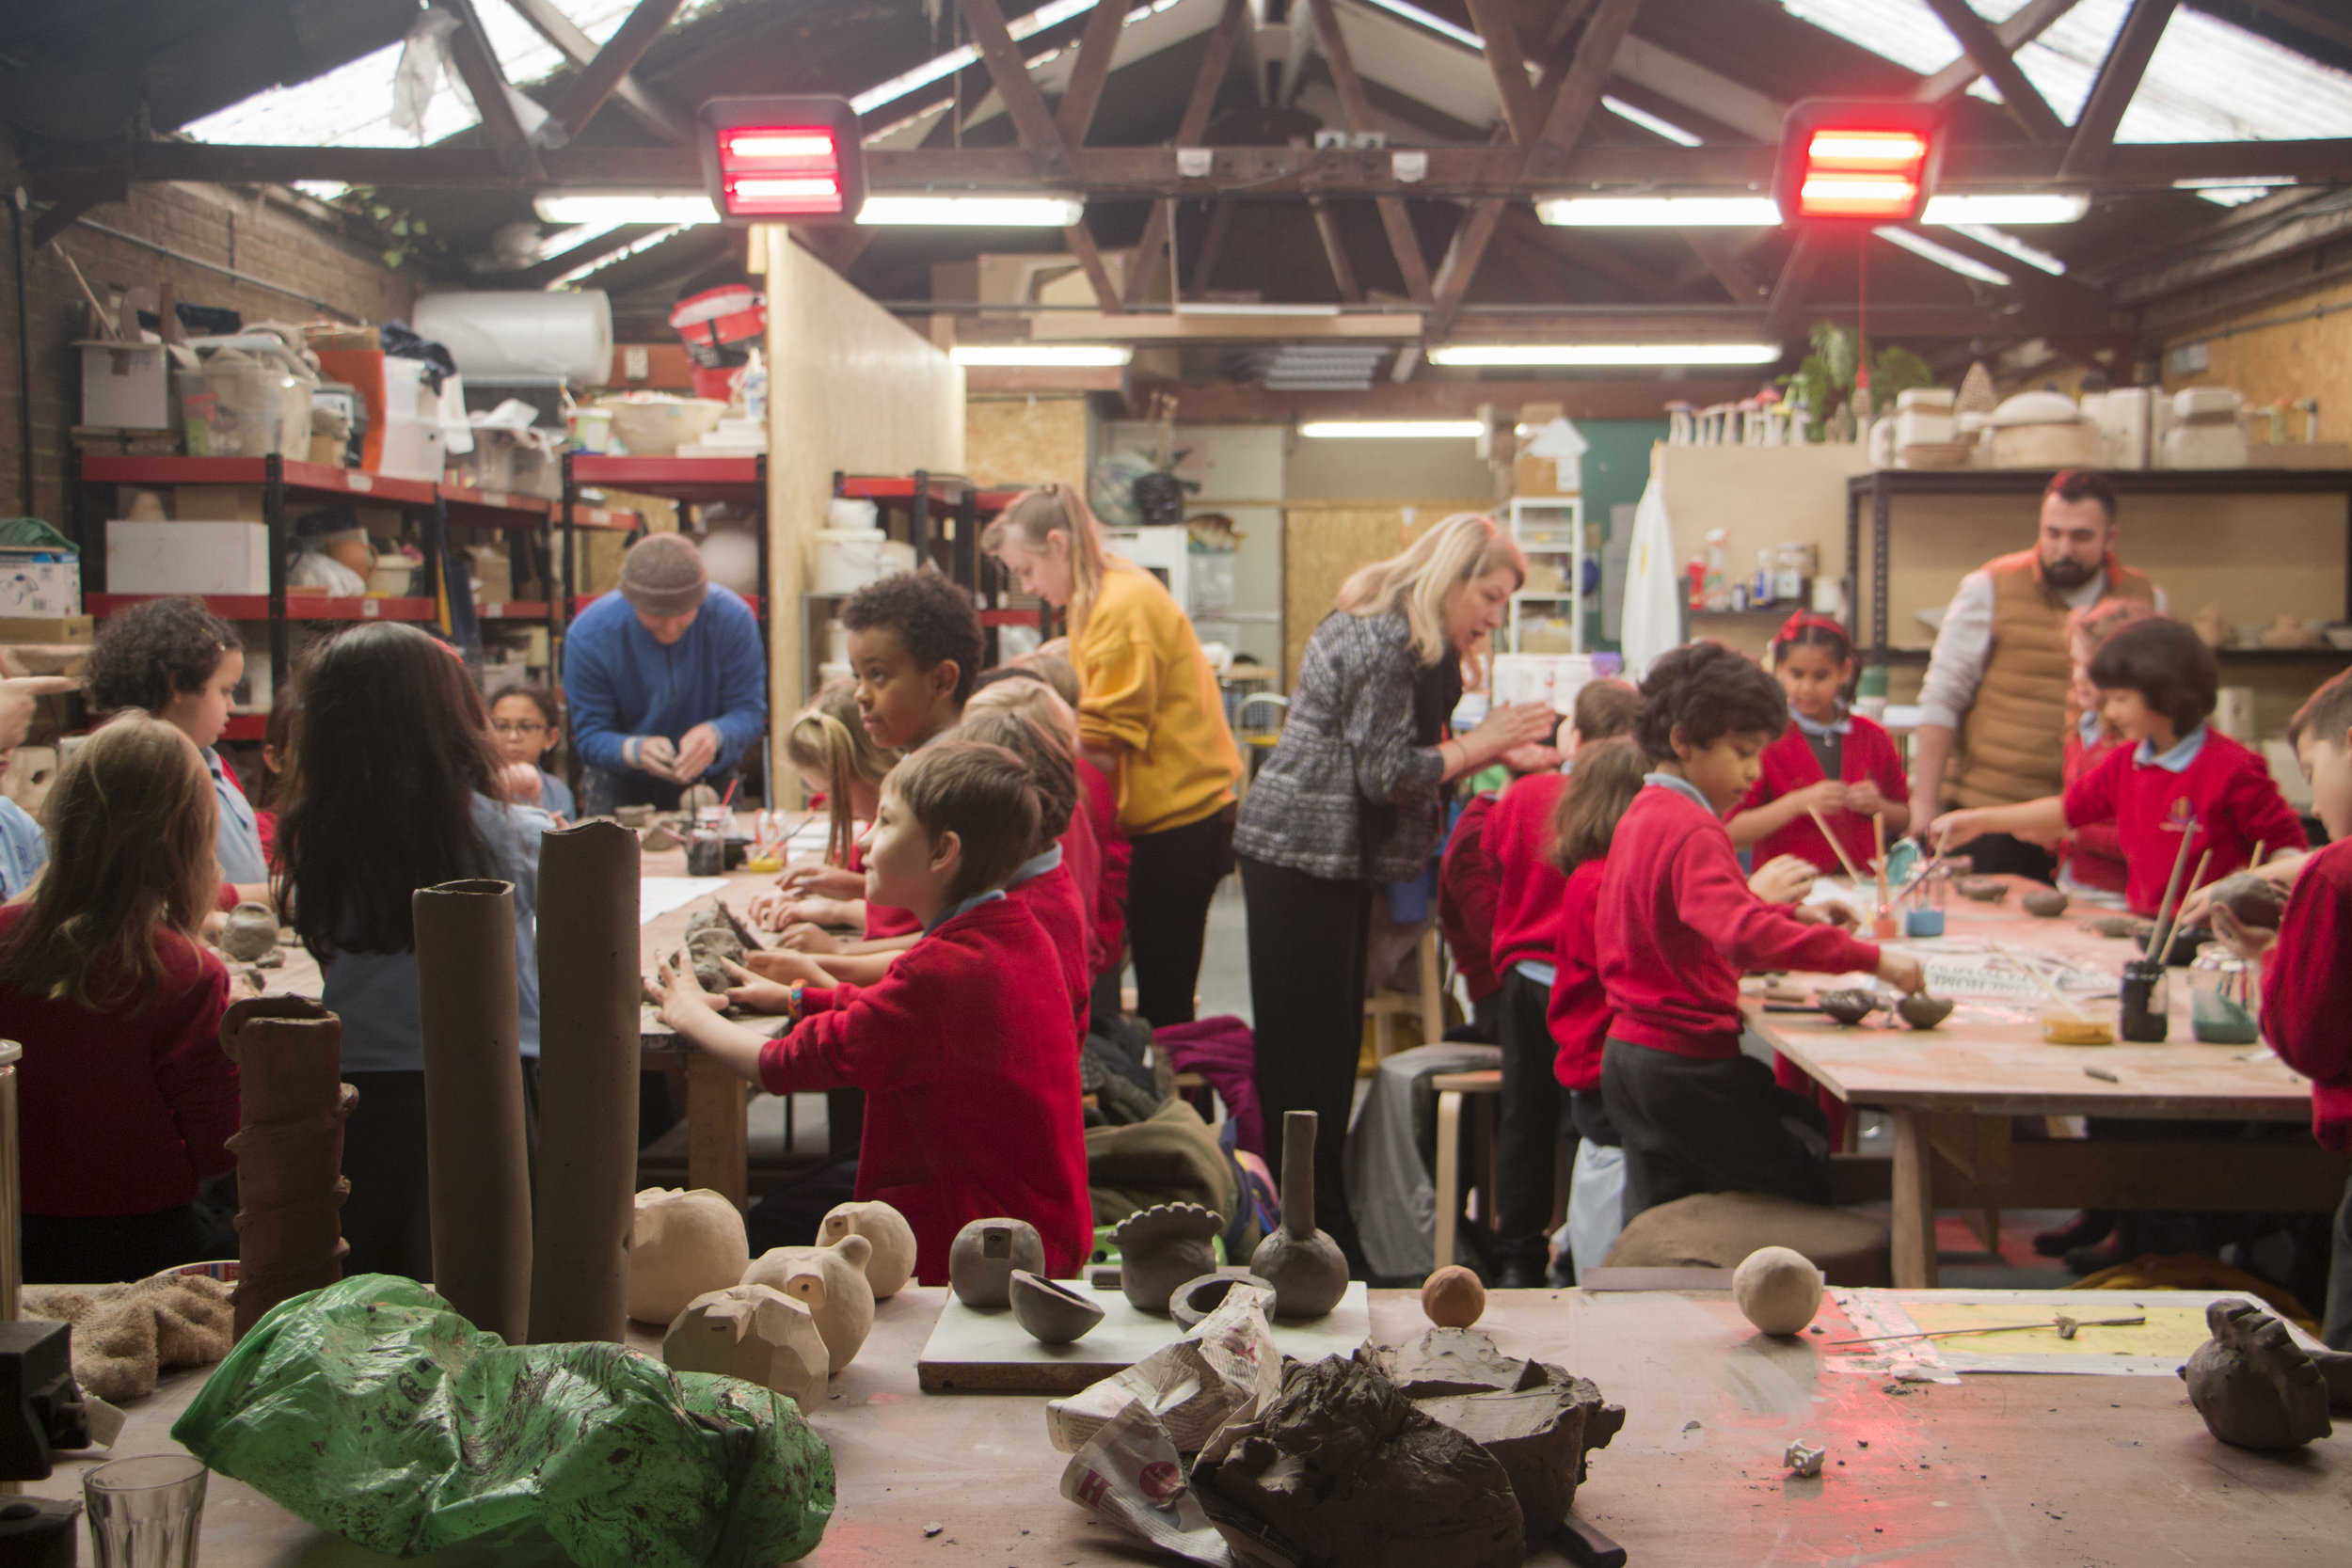 art-week-ocarina-workshop-kingscross-201929.jpg